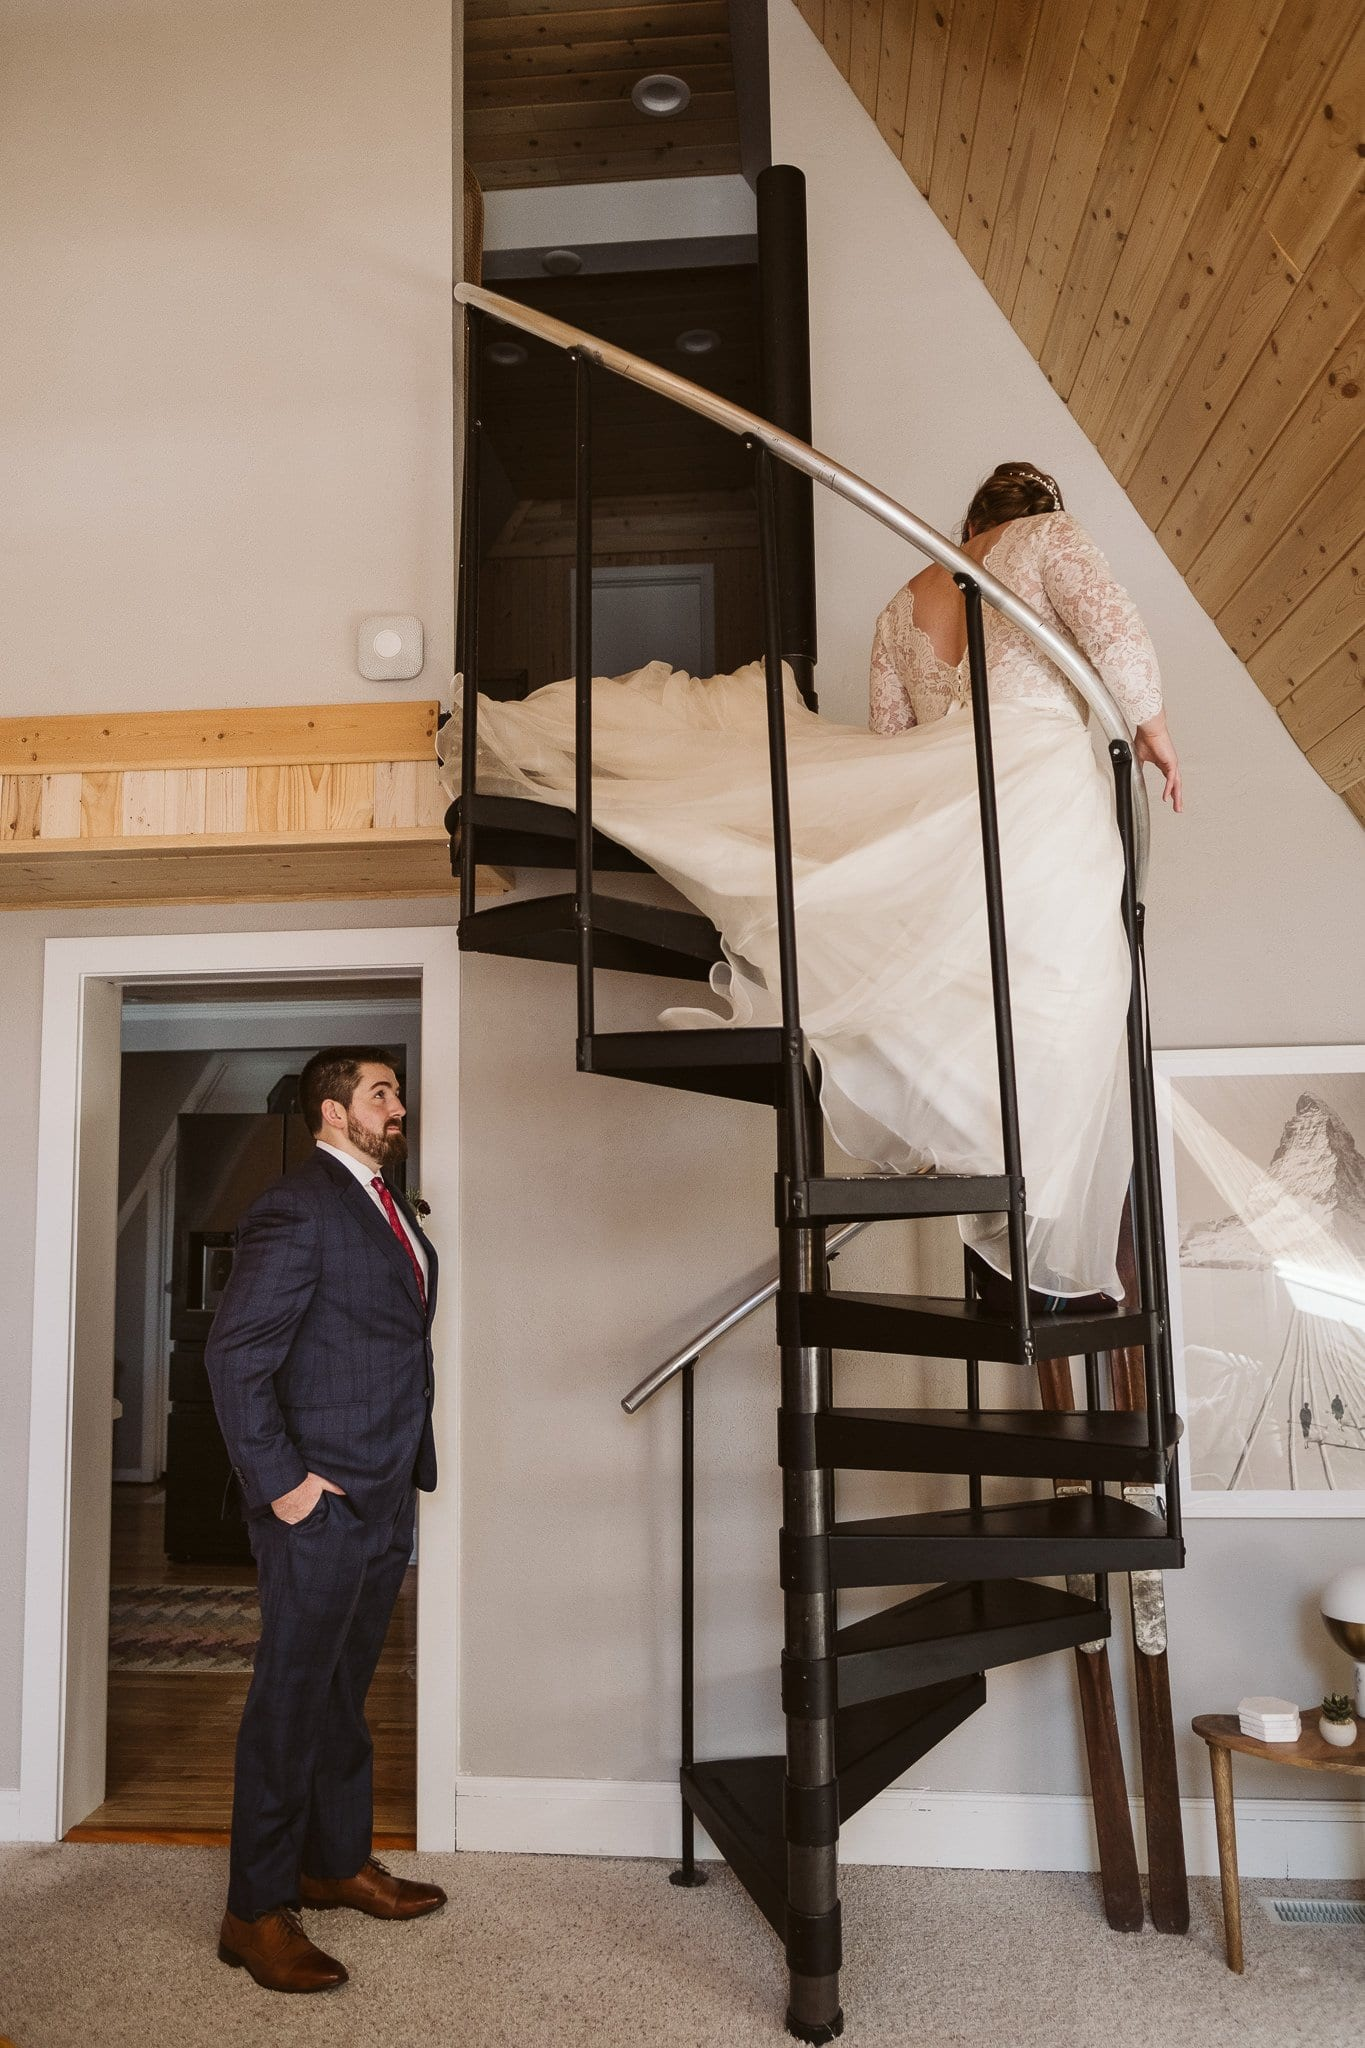 Bride and groom first look walking down stairs, A-frame cabin elopement in Breckenridge, Colorado.